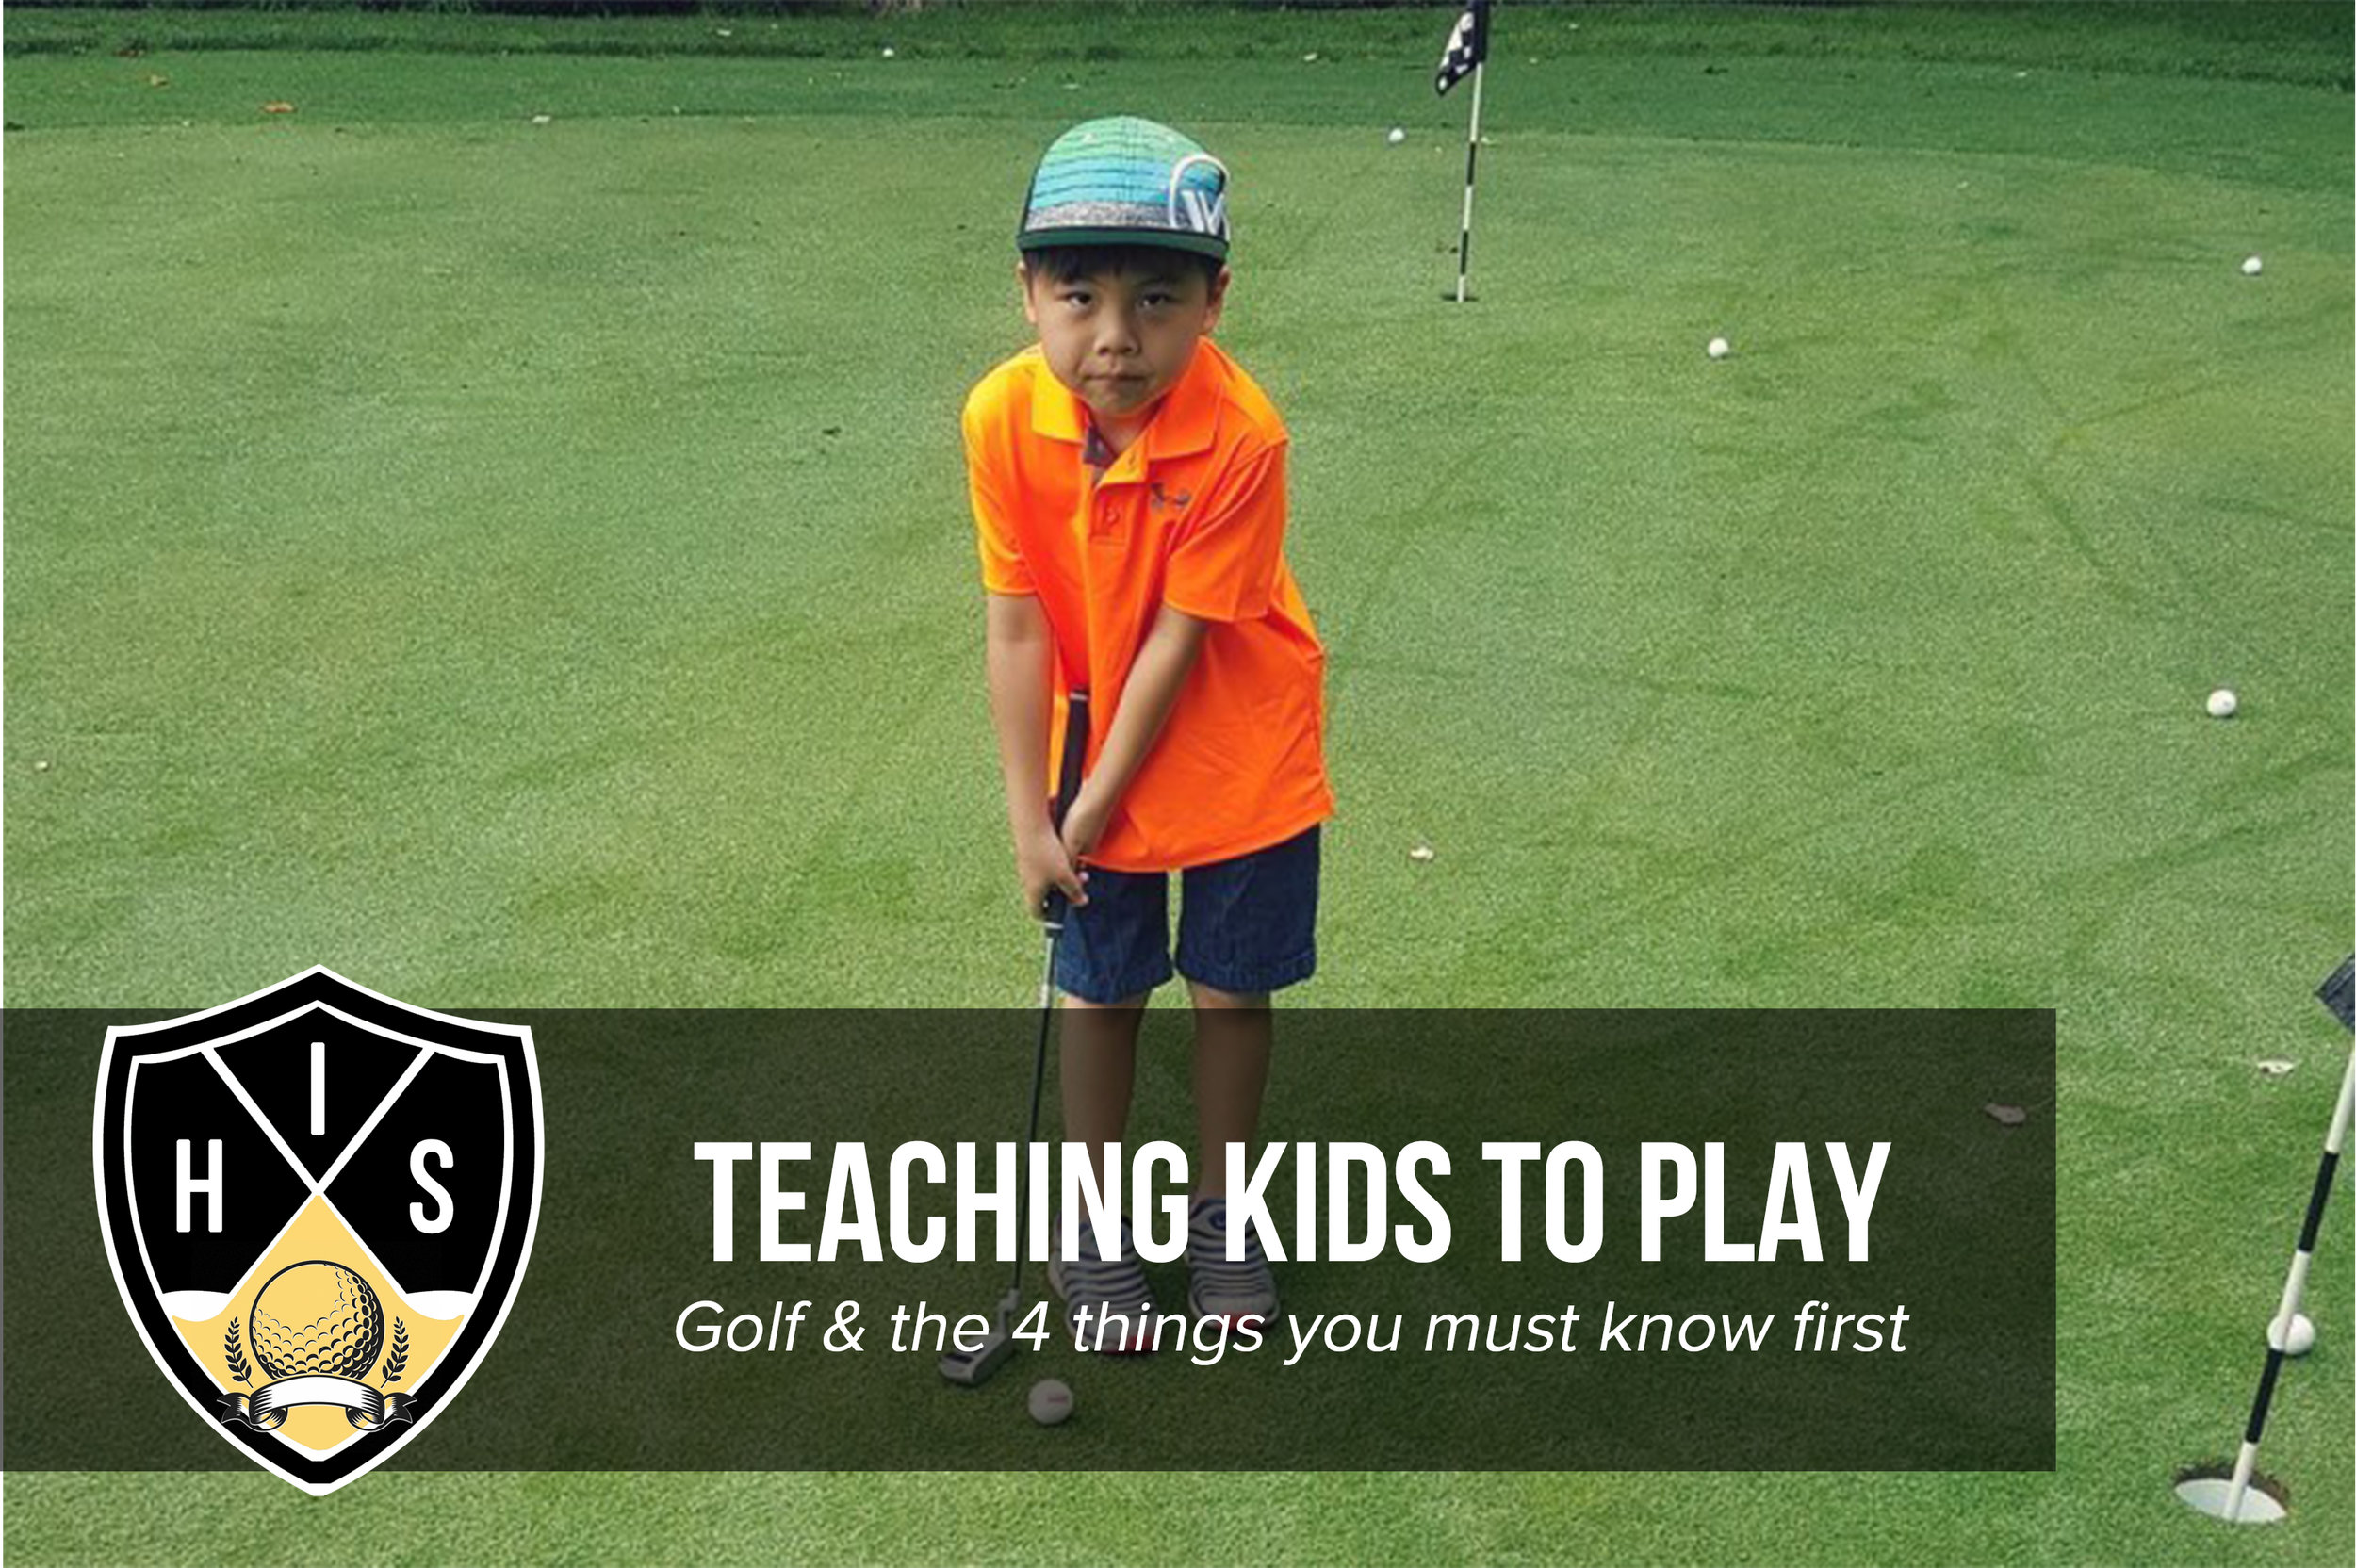 Teaching Kids to Play Golf